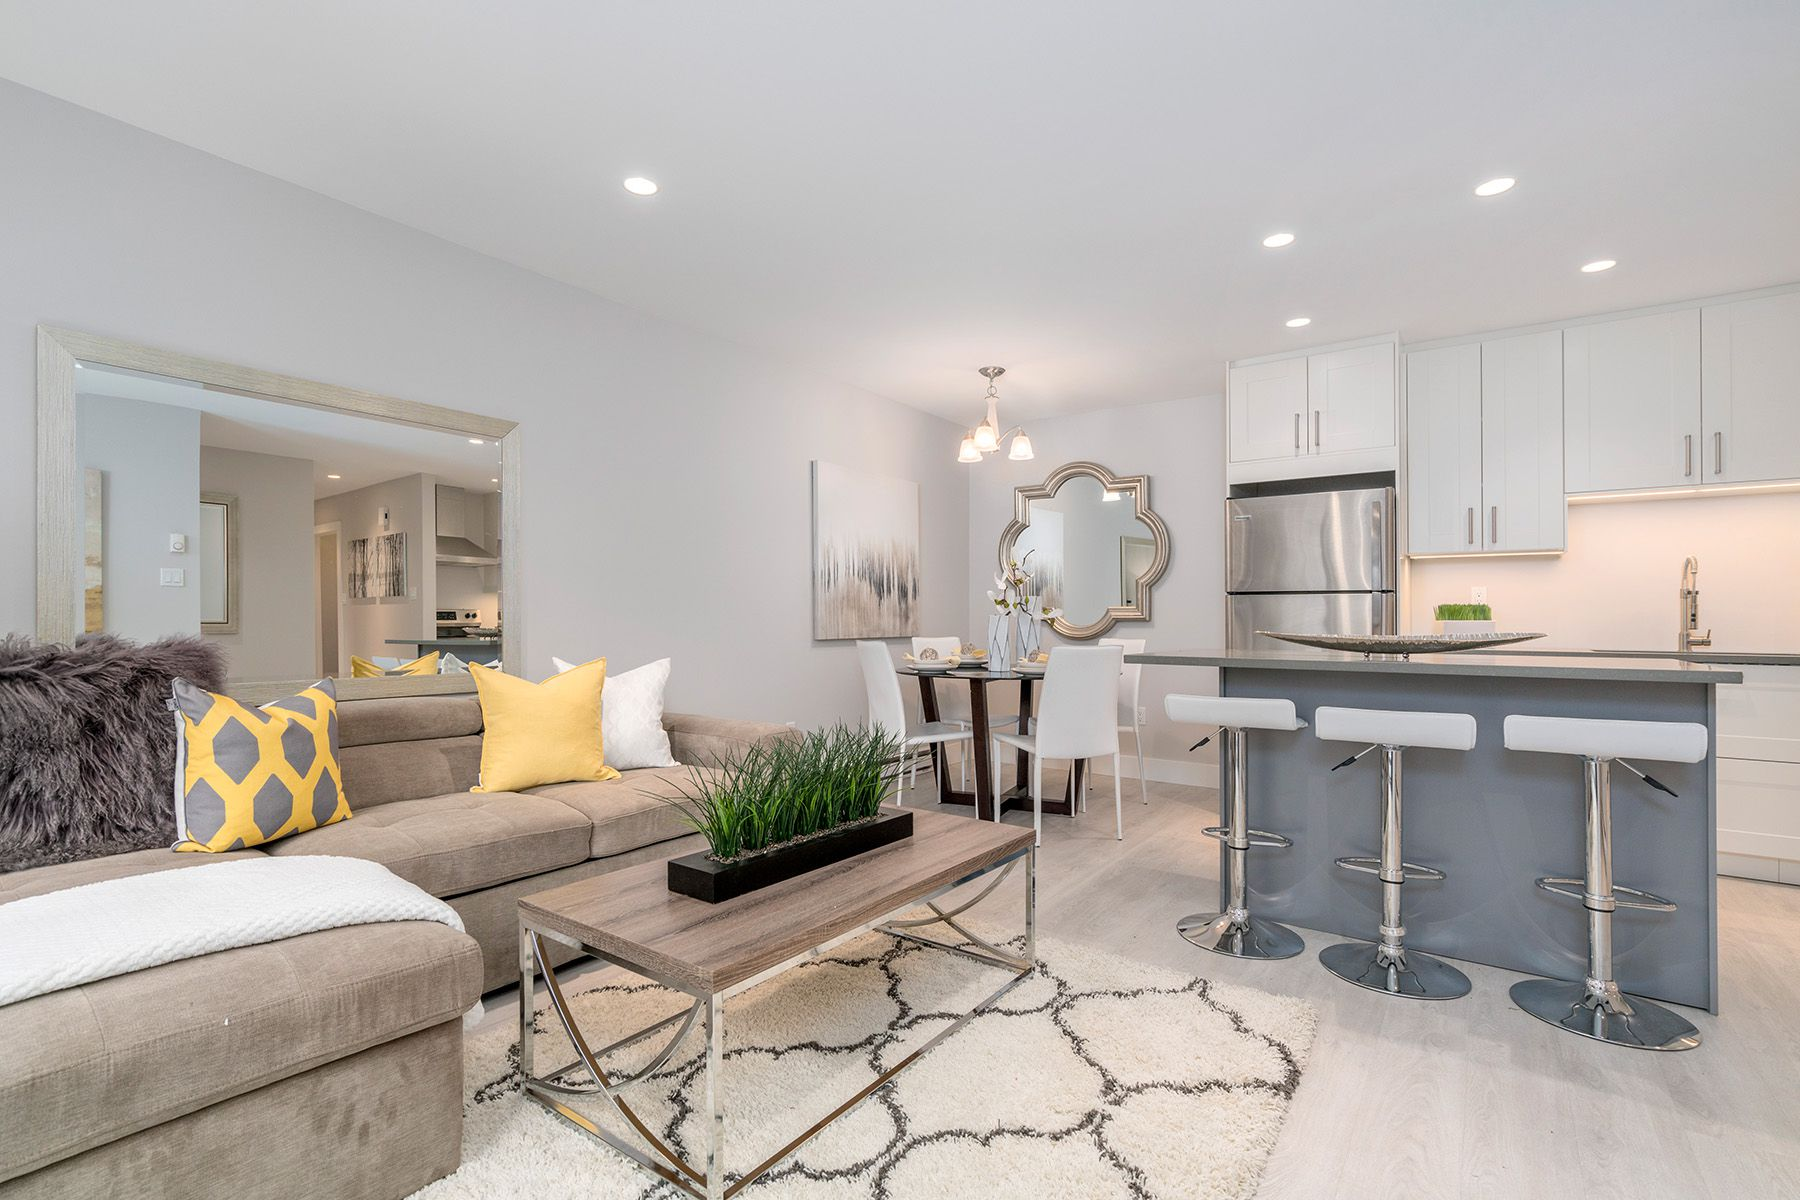 """Main Photo: 103 8060 COLONIAL Drive in Richmond: Boyd Park Condo for sale in """"Cherry Tree Place"""" : MLS®# R2236610"""